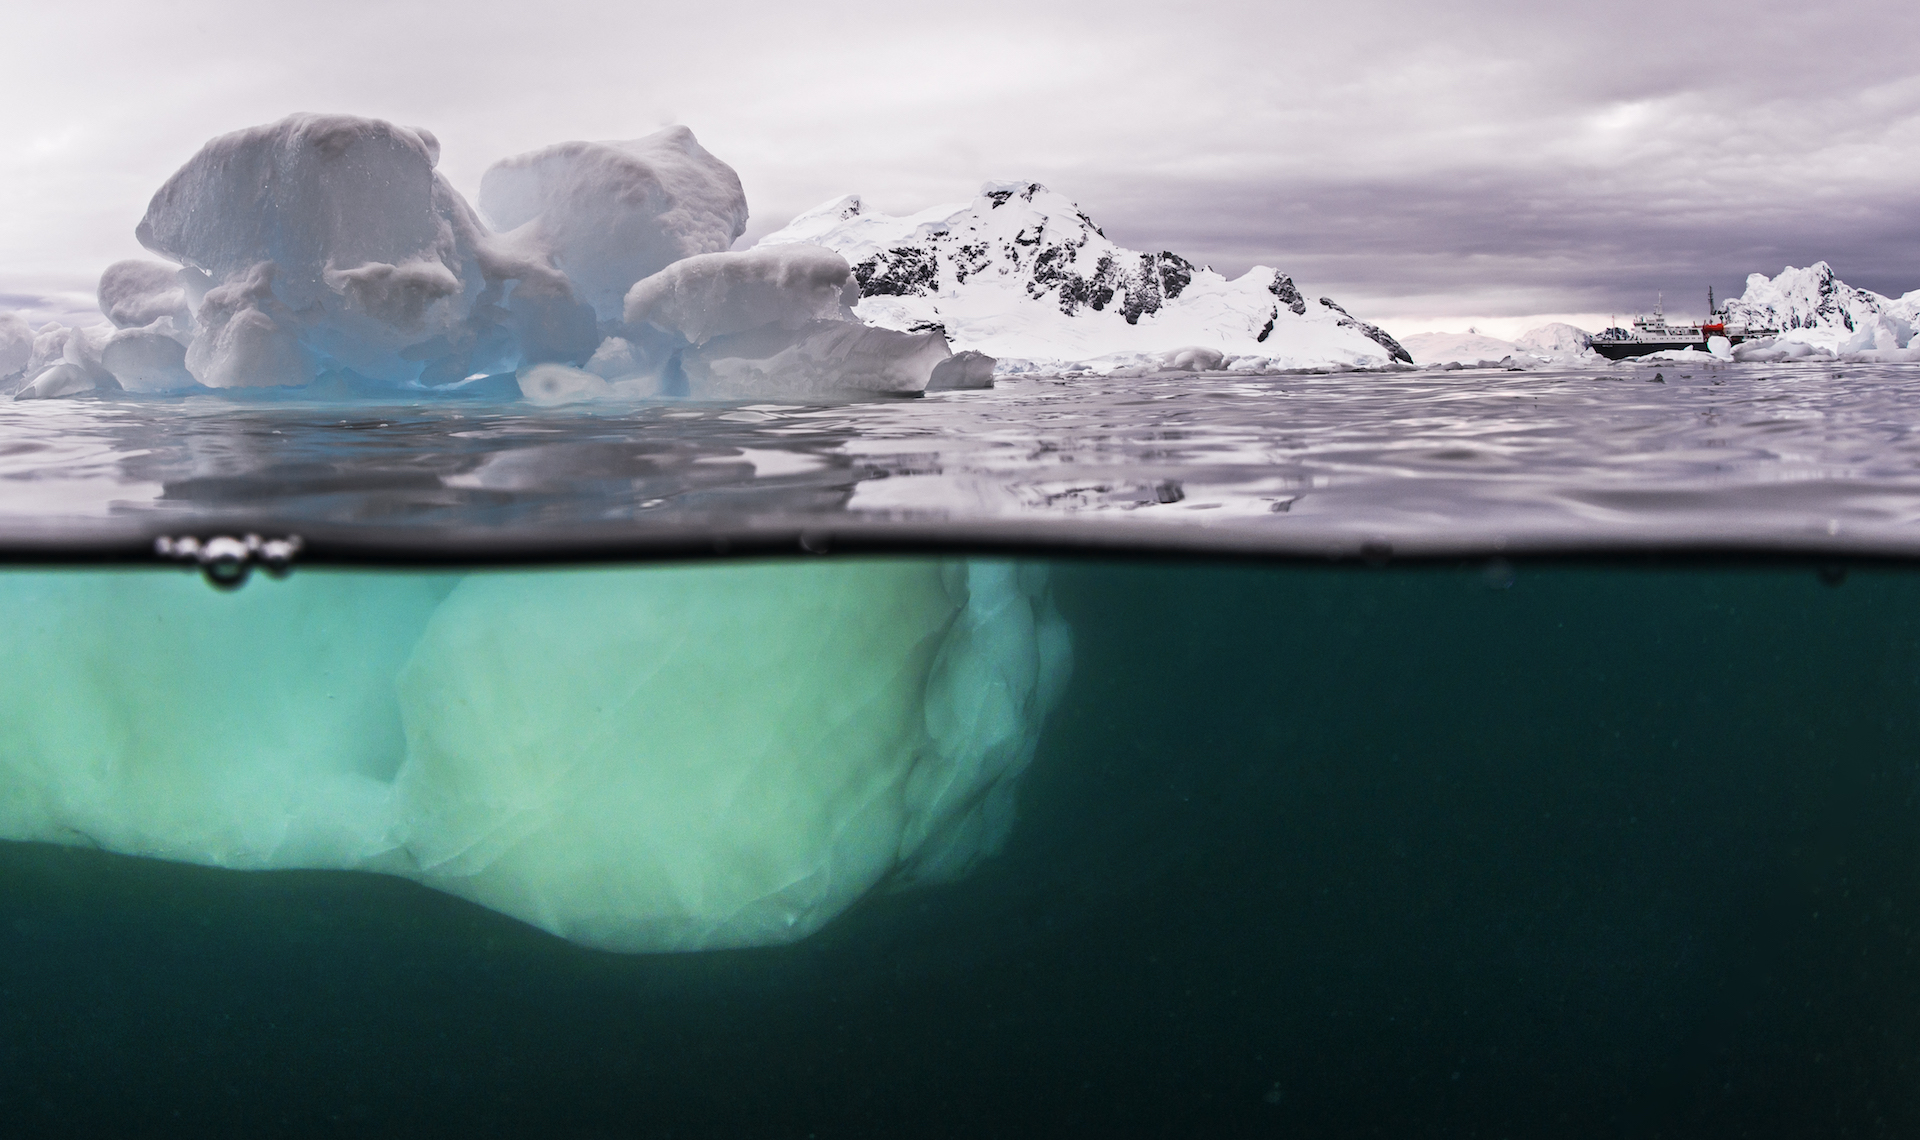 Sculpted by the wind, the ice takes on exquisite forms, both above and below the surface. The icebergs are titanic in size, often spanning several square kilometres, and dwarfing the ship as seen in this image.